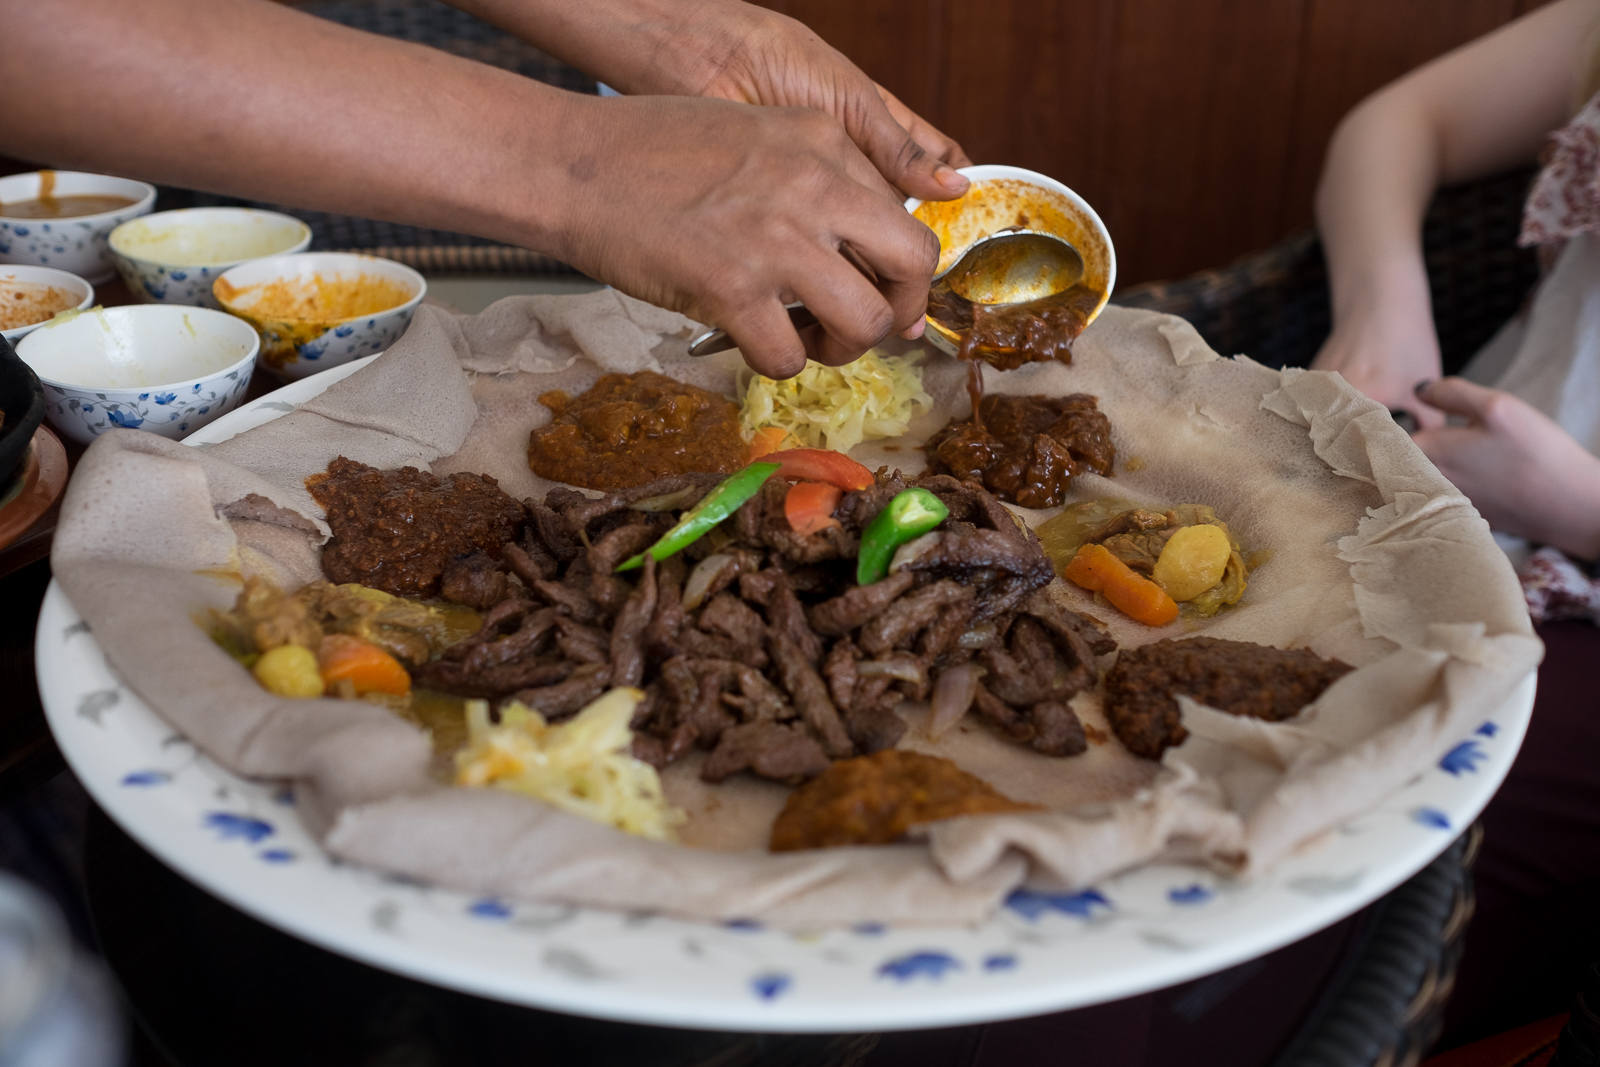 Ethiopian food served on an injera at the Bonne Anne restaurant, Abu Dhabi